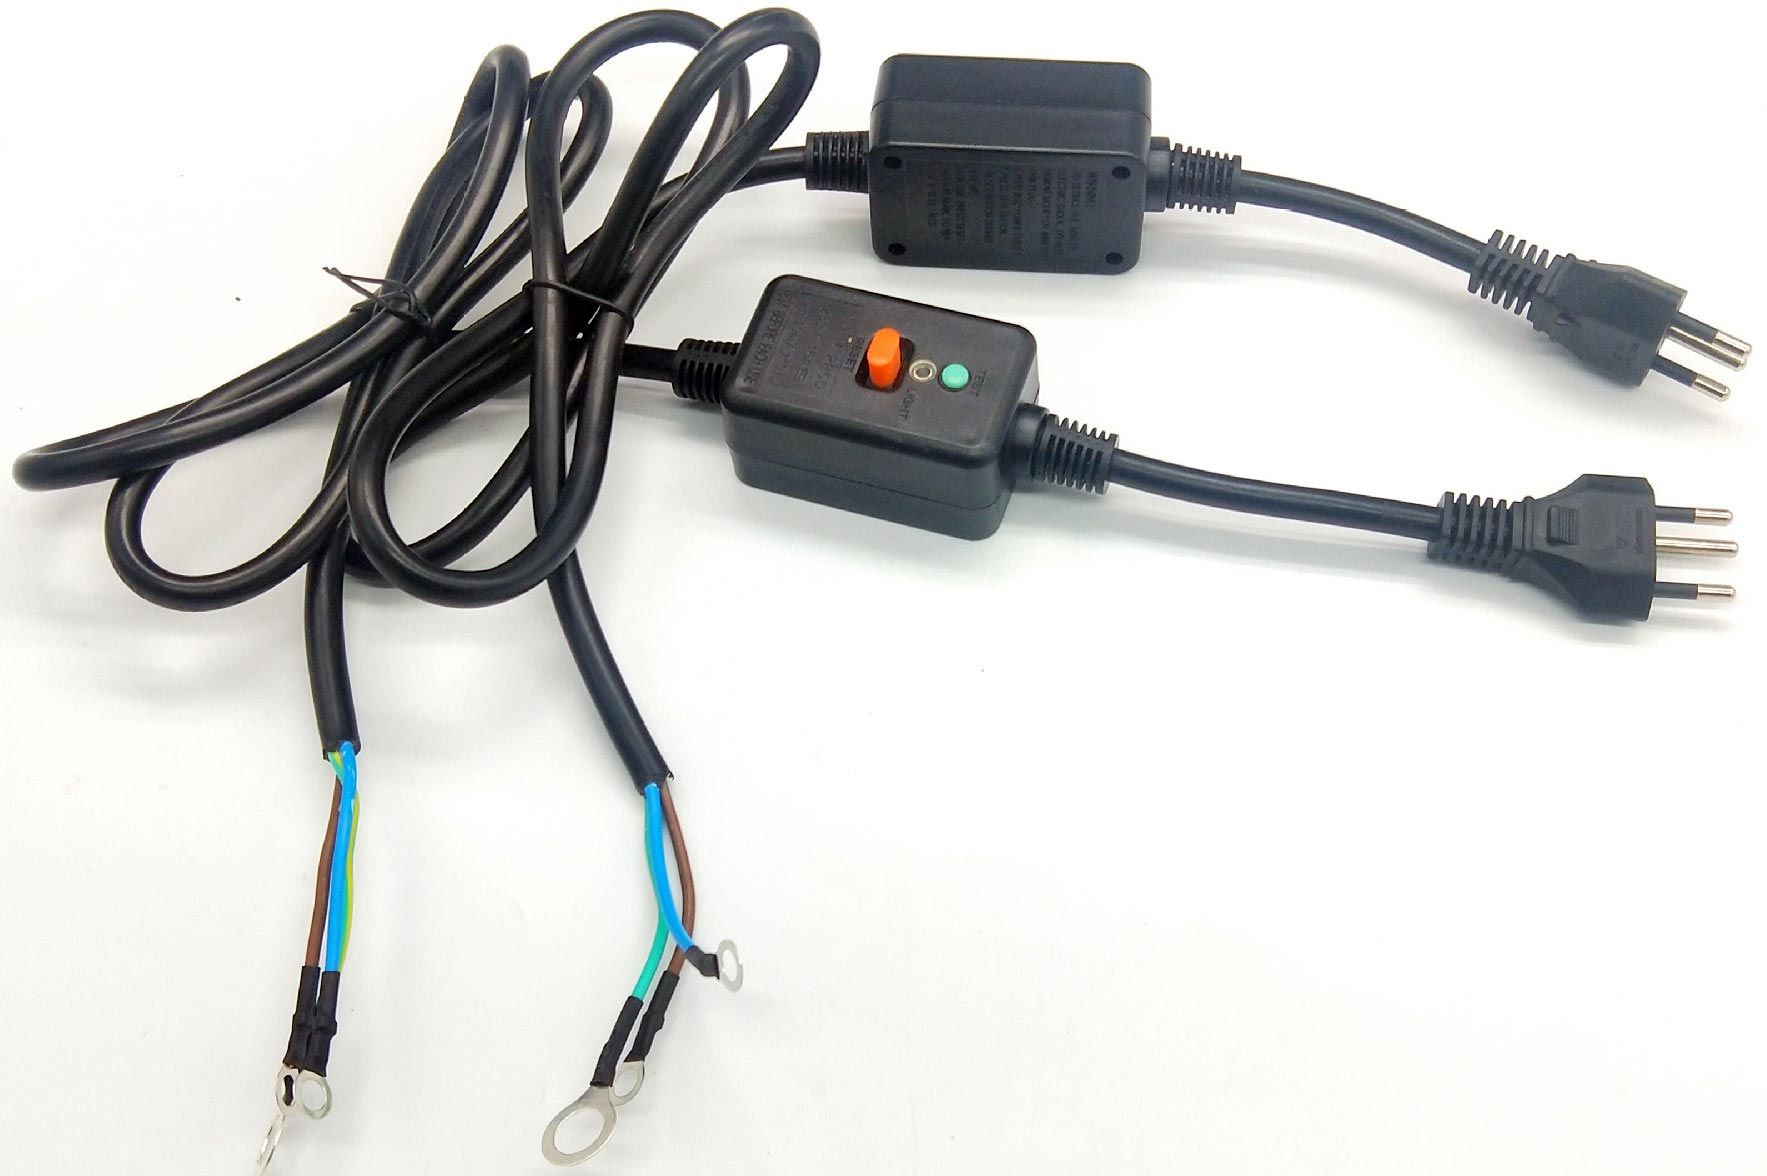 Brazil Power Cord Nbr 14136 Uc Type N Plug South American Inmetro Wiring C13 Connector C15 Computer Socket Iec Ac With Inline Gfci